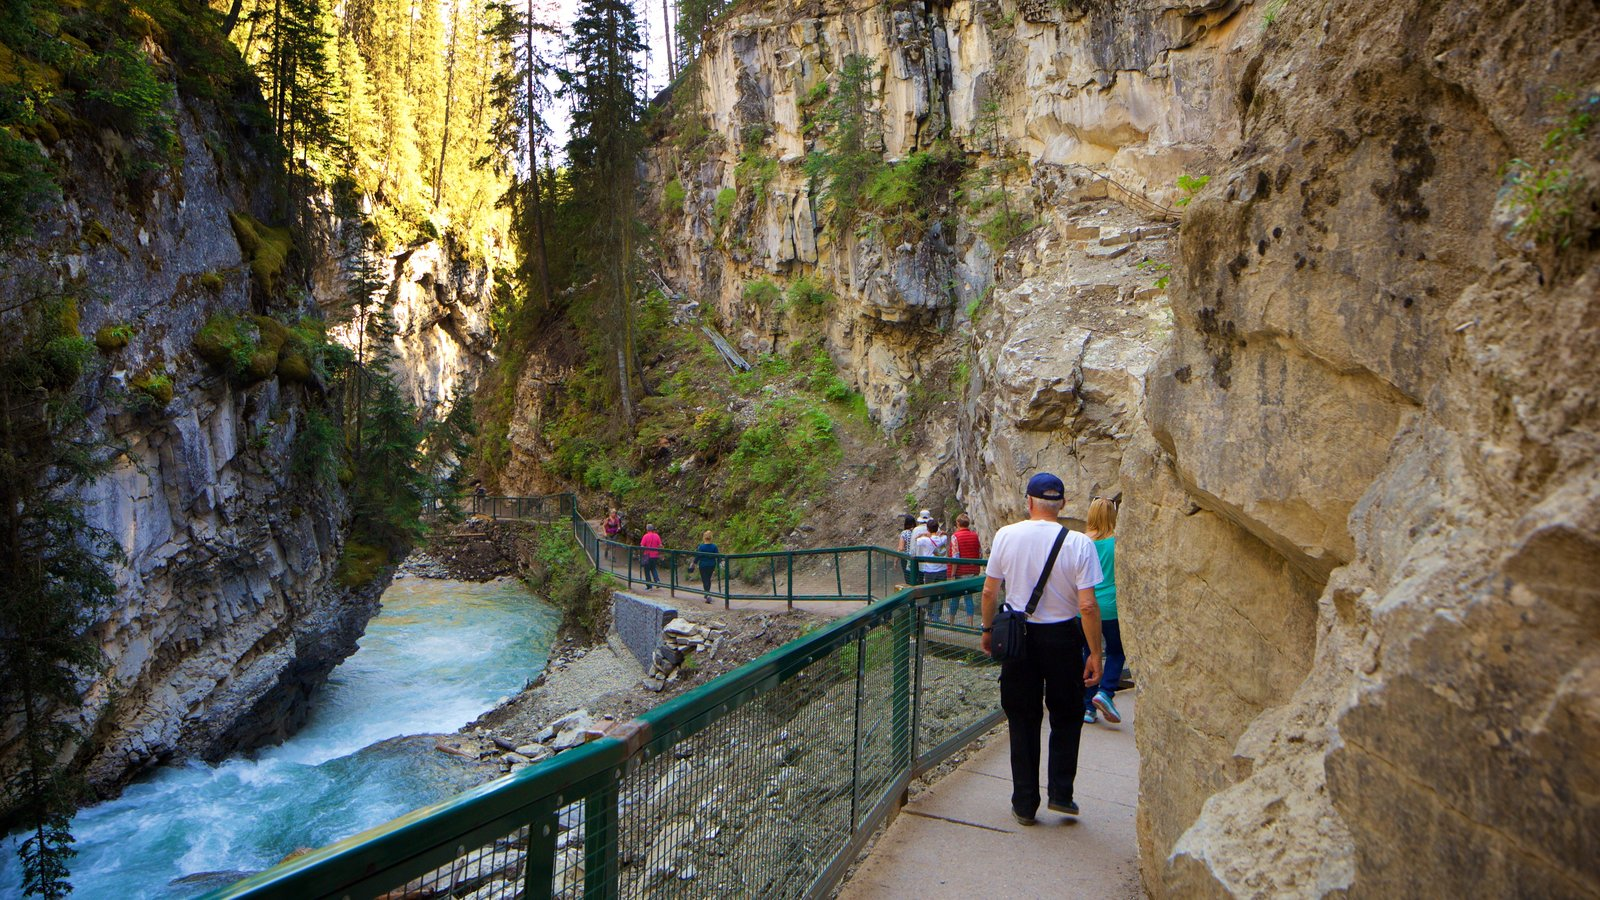 Johnston Canyon showing hiking or walking, a gorge or canyon and a river or creek